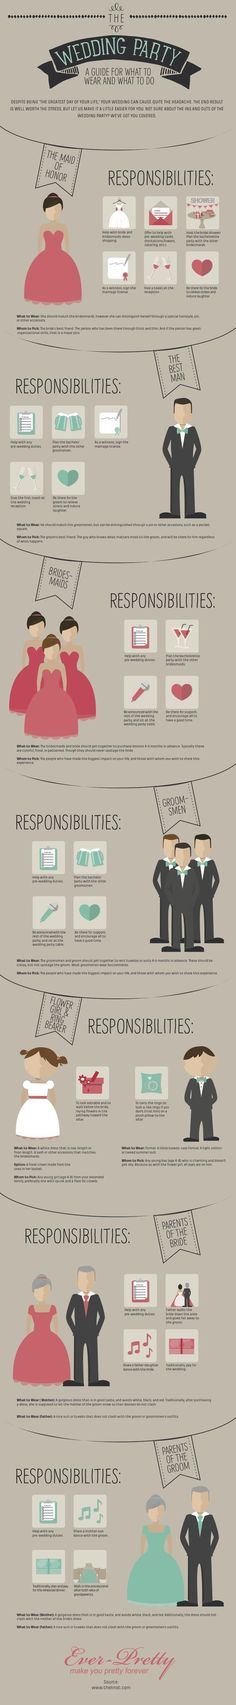 The Wedding Party duties. Something to definitely put in their boxes for when we ask them. So there is no room for debate and everyone knows right off hand what their responsibilities are.: